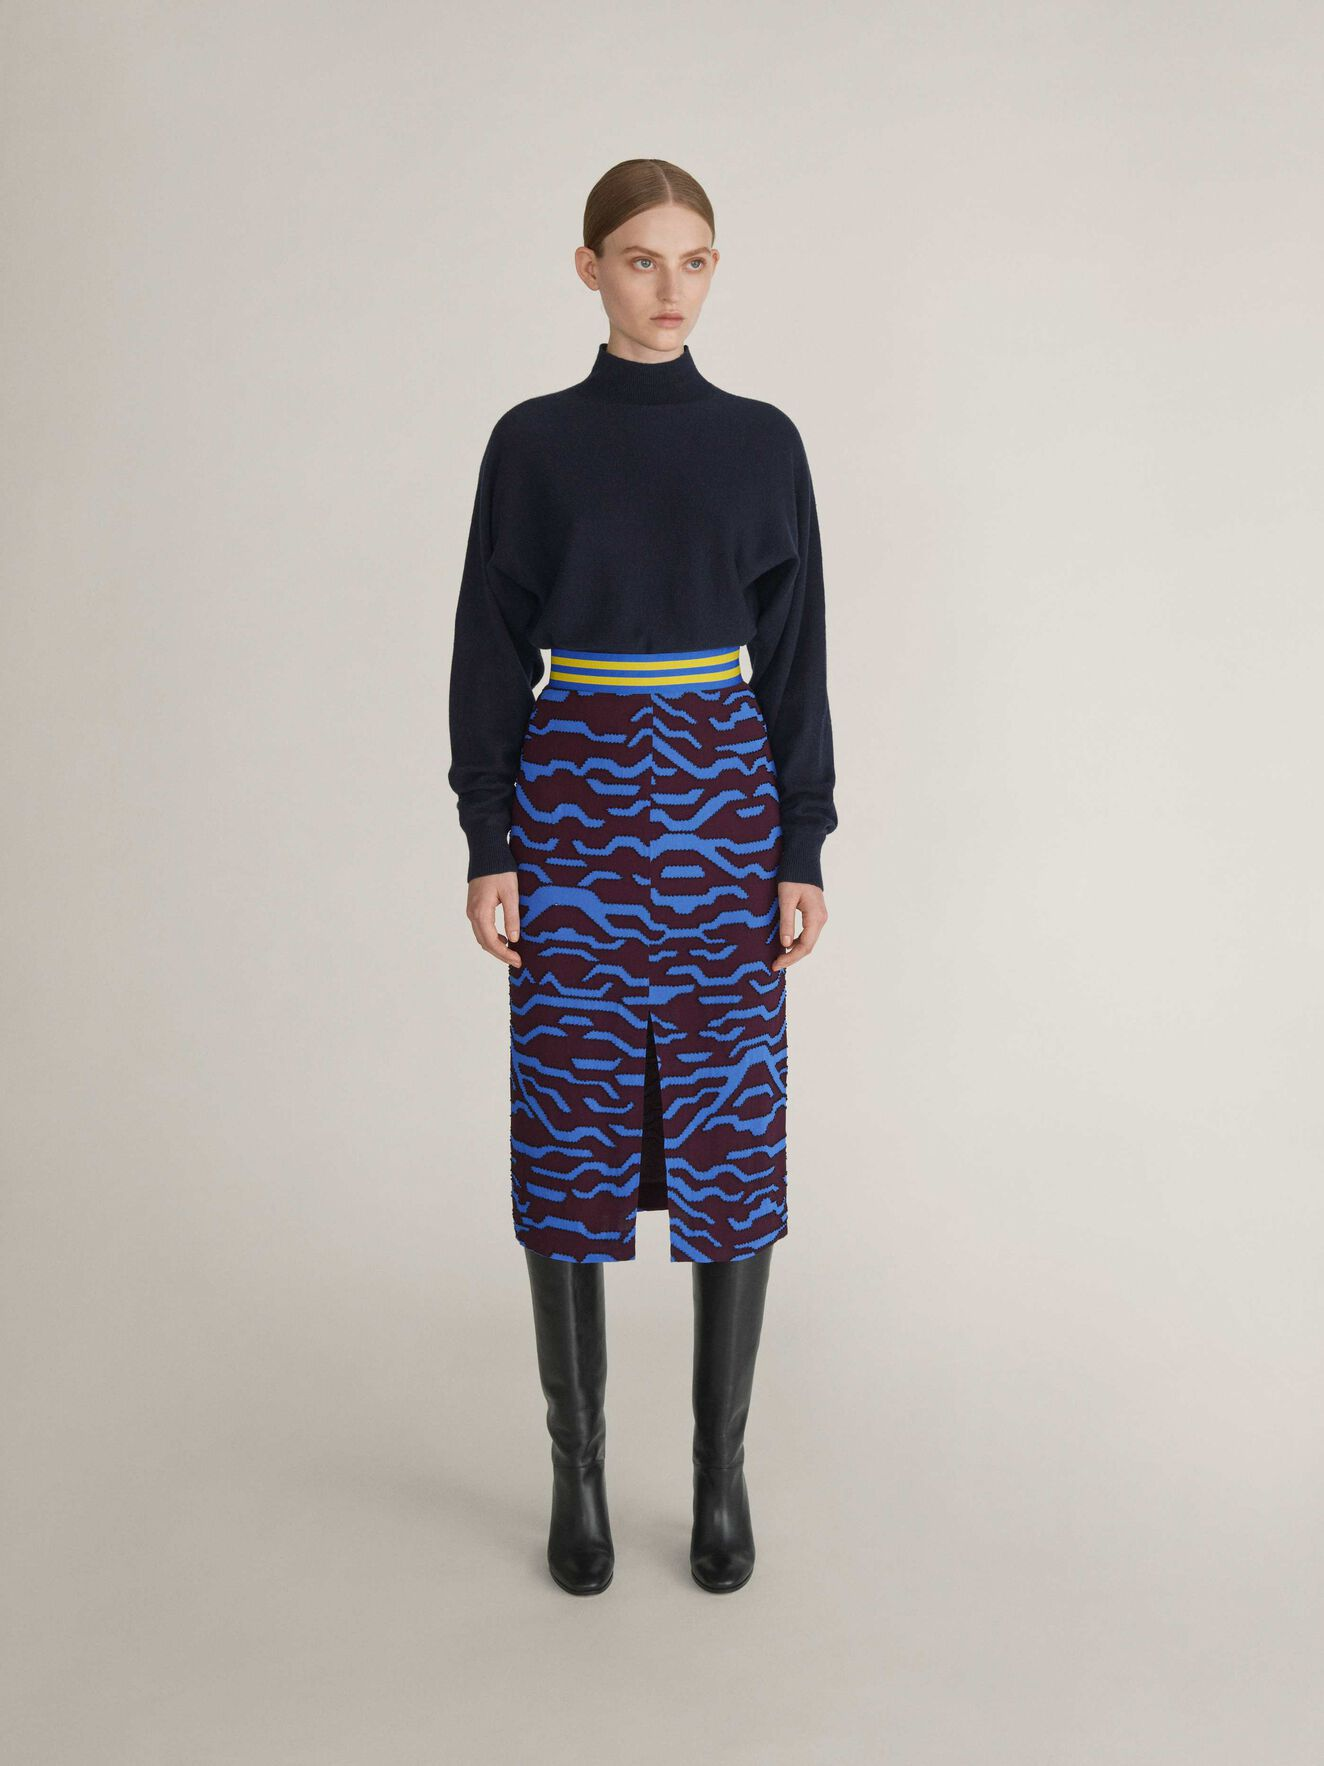 Cailyn Skirt in ARTWORK from Tiger of Sweden